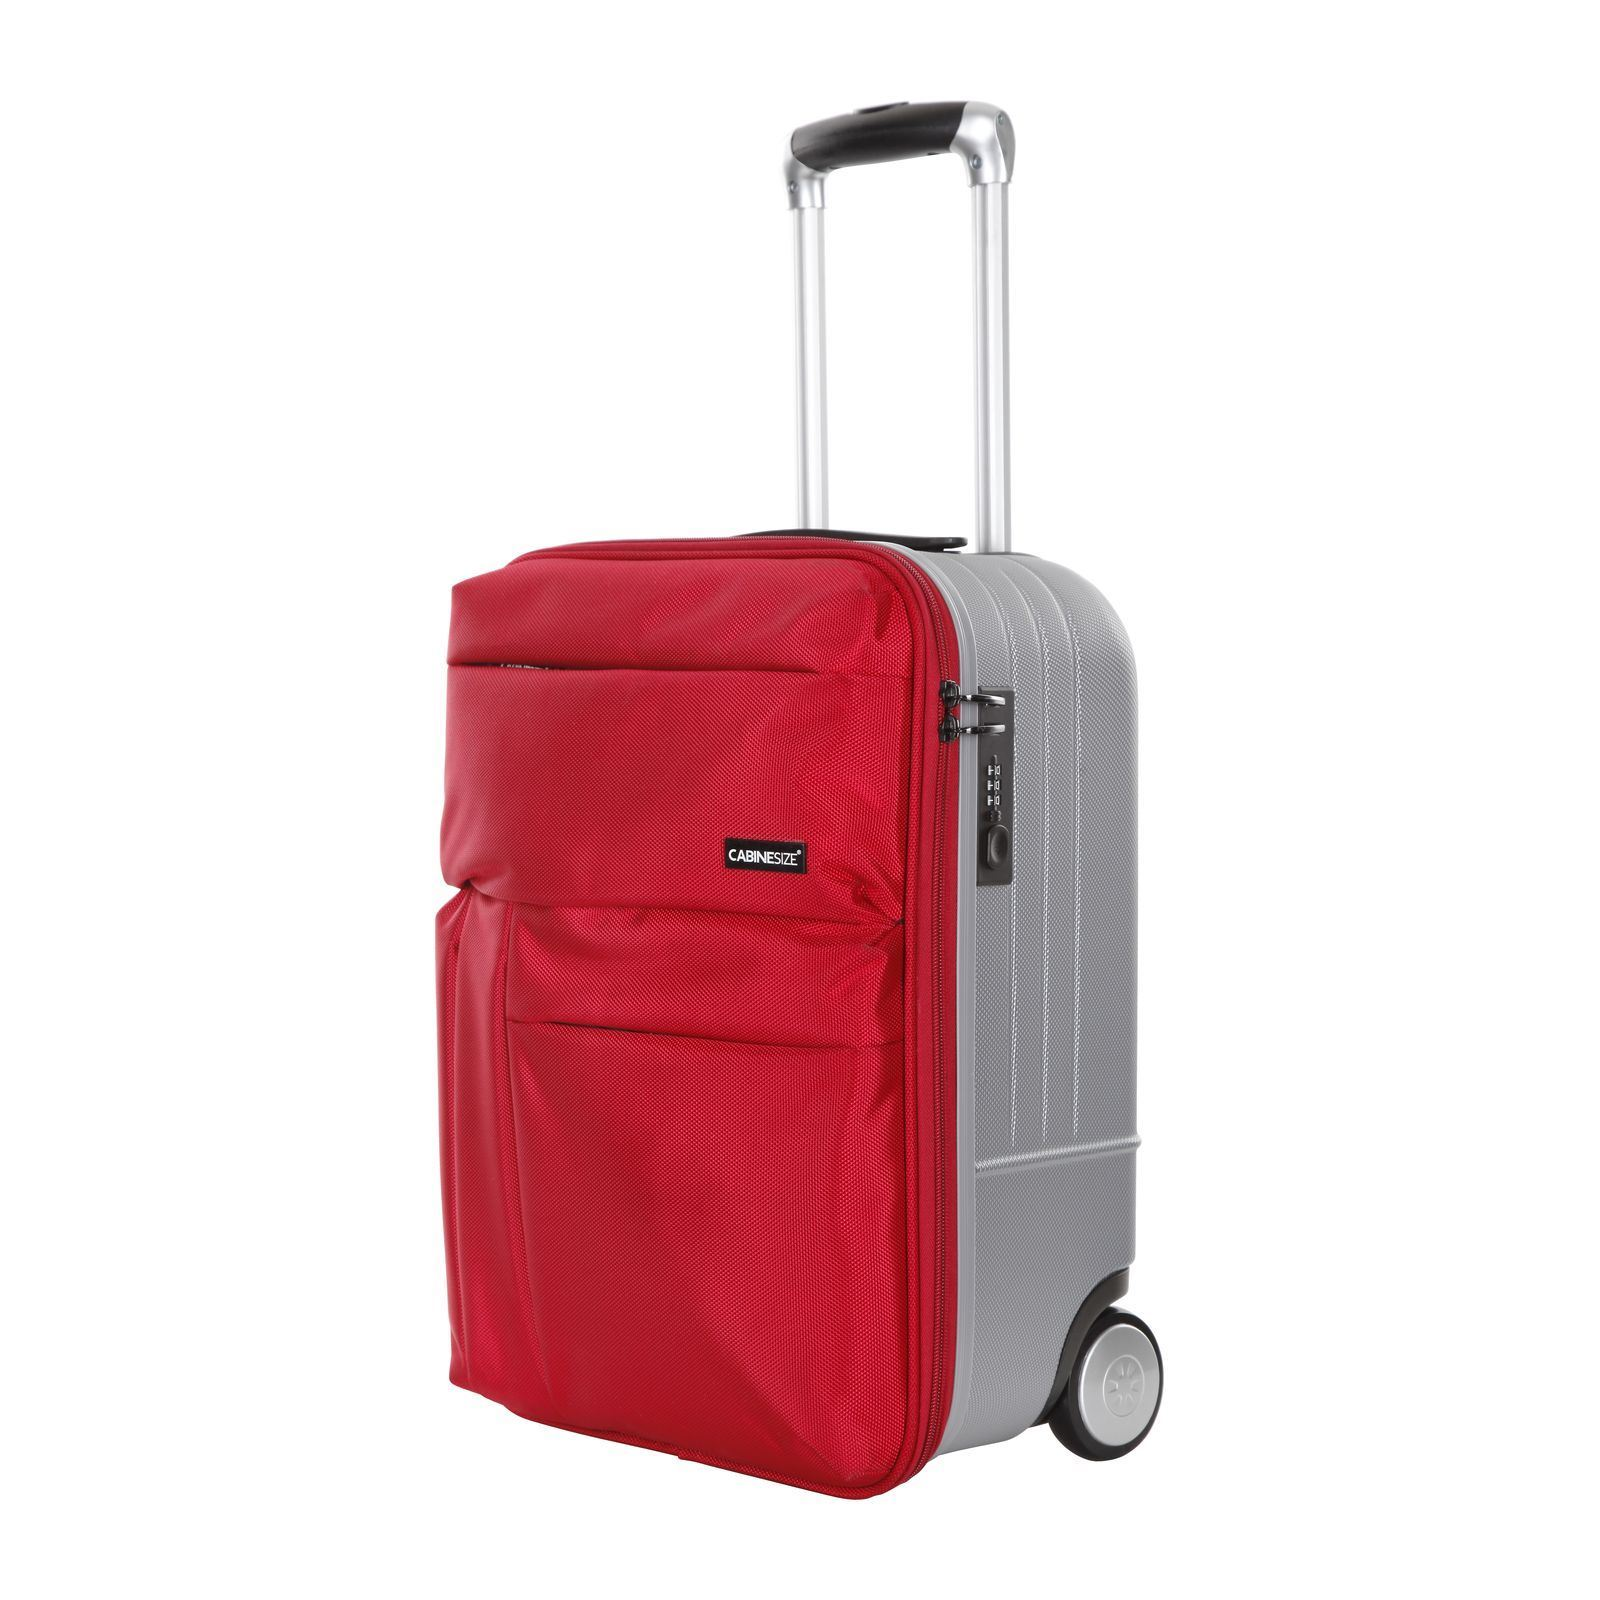 Cabine Size Book - Valise - rouge | Brandalley - Valise Rouge